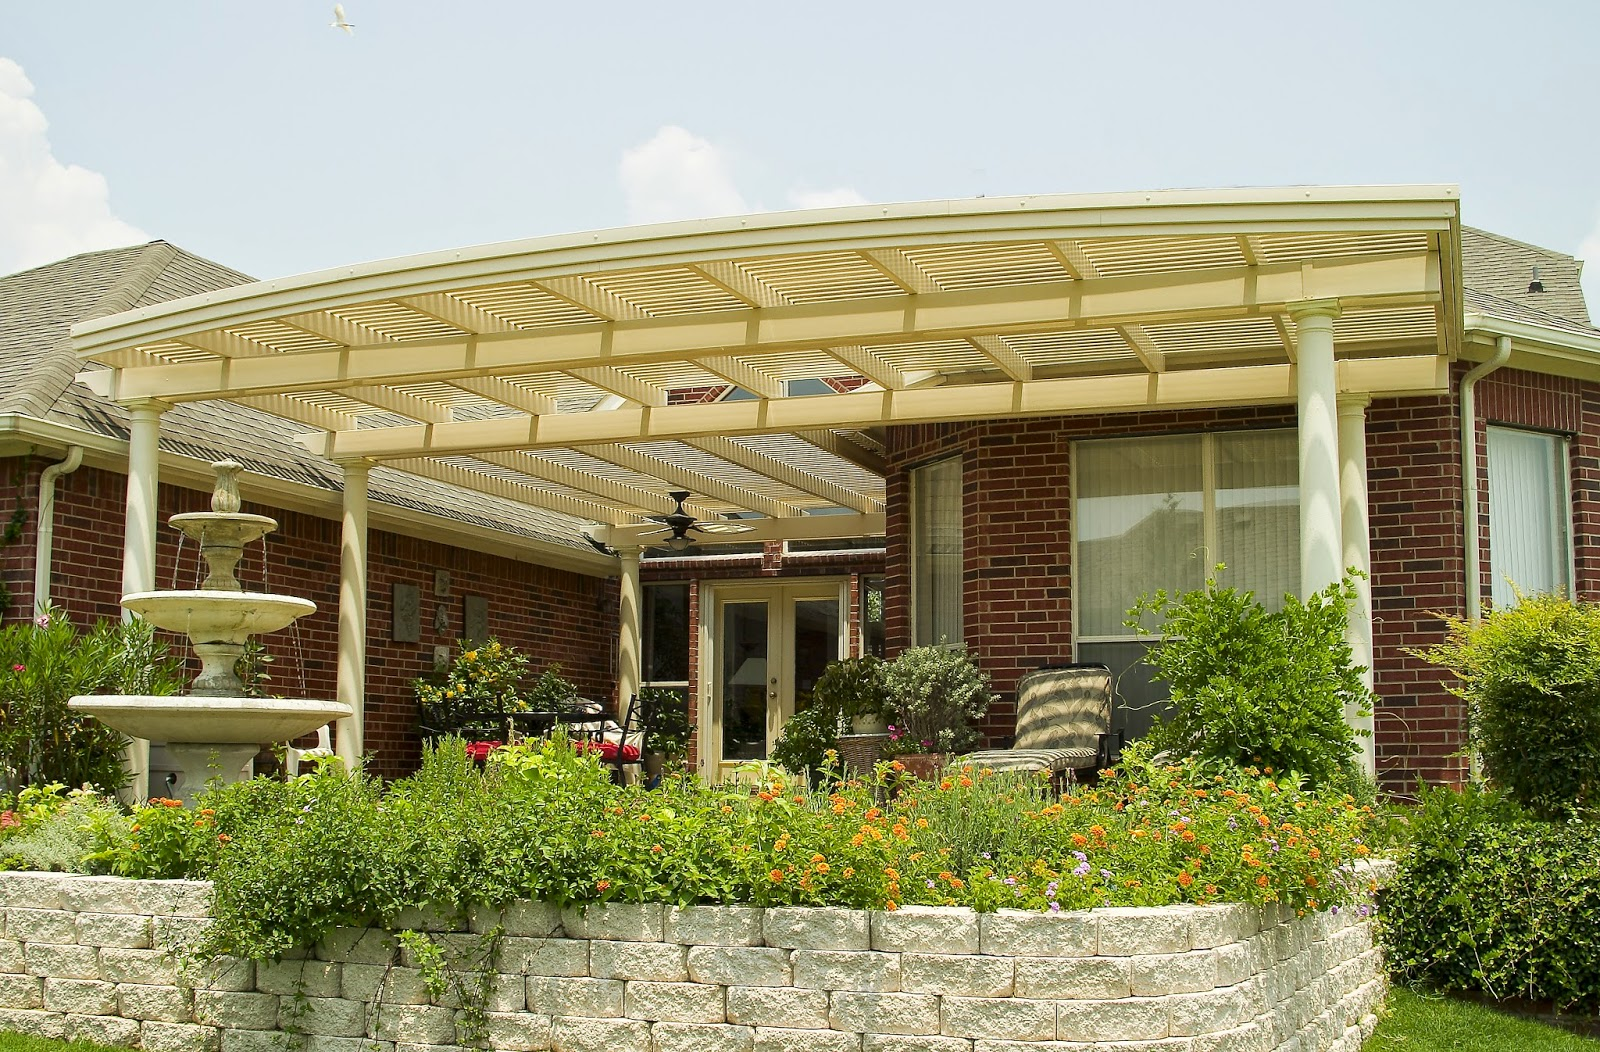 Vinyl Shade Structure with Retaining Wall